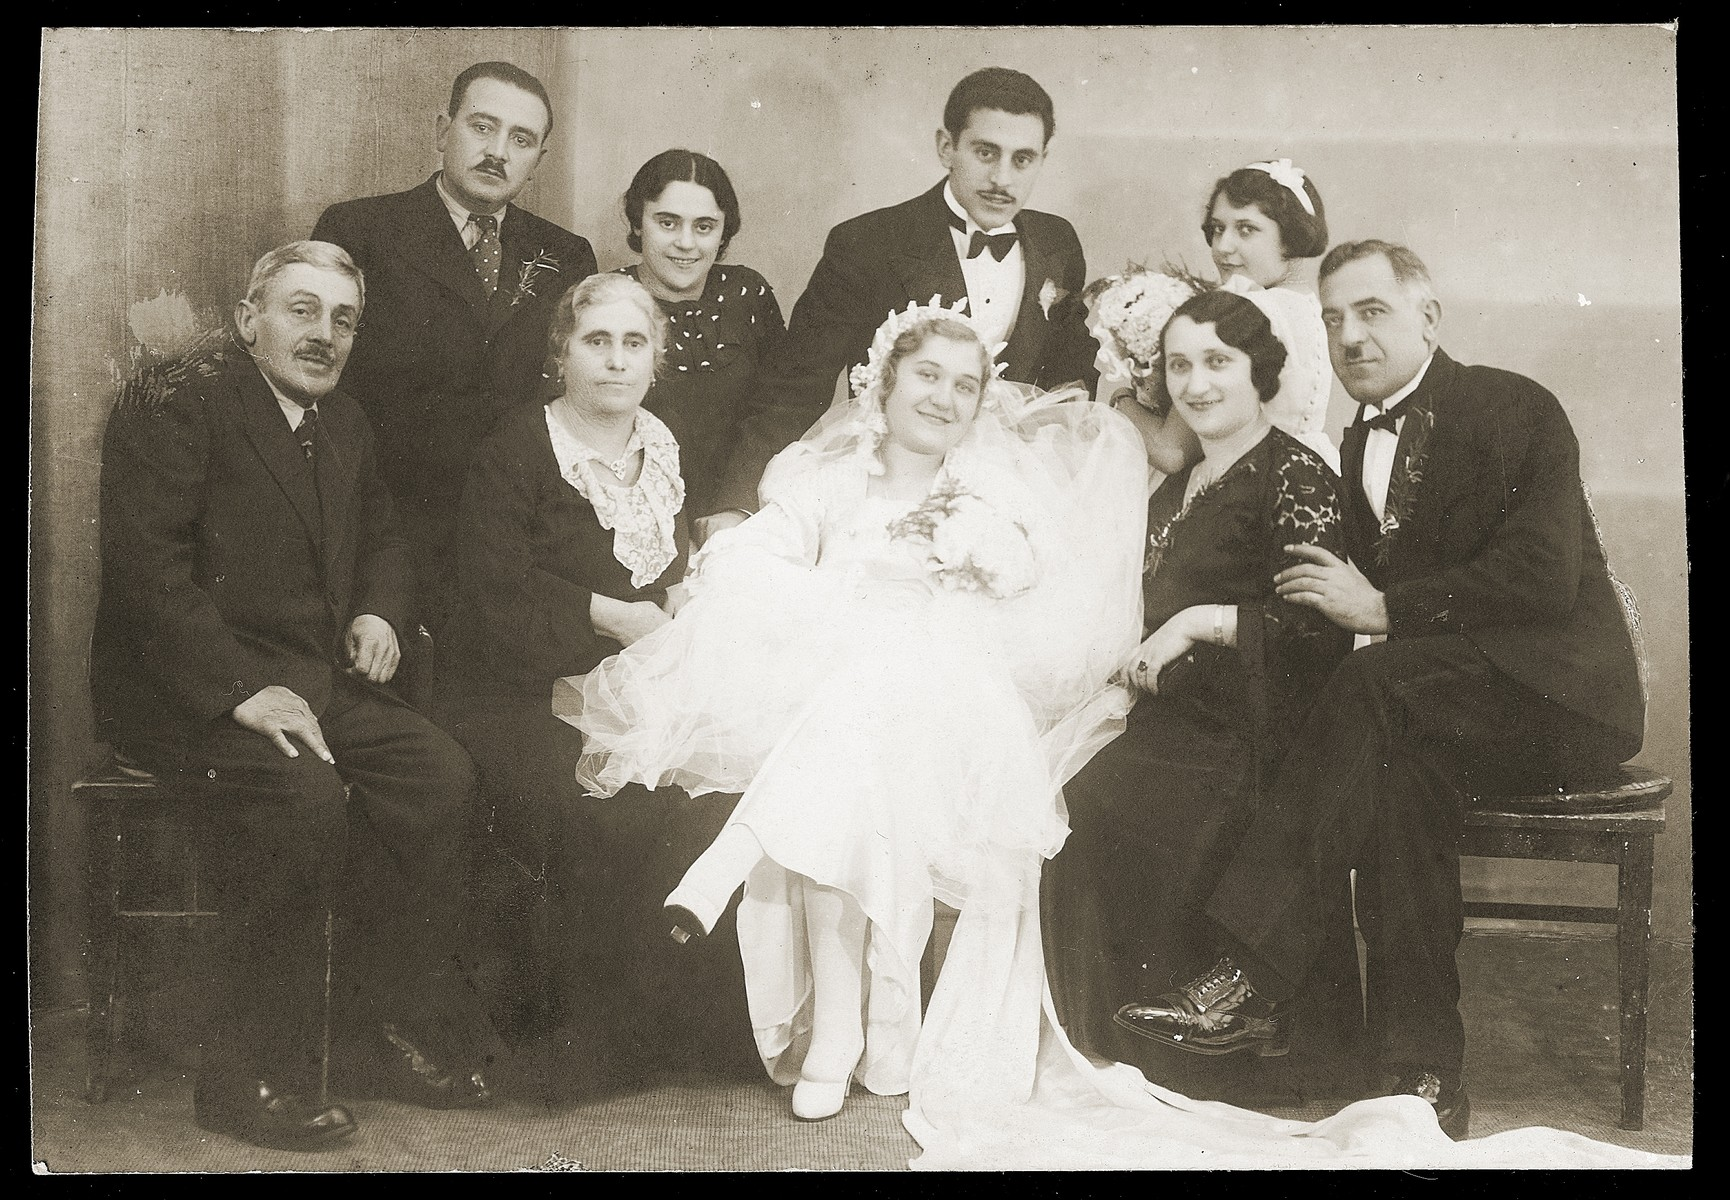 Group portrait of family members at the wedding of Mosa (Moshe) Mandil and Gabriela (Ela) Konfino in Belgrade.    Pictured are Mosa Mandil and Gabriela Konfino, the groom and bride, David and Regina Mandil, the groom's parents (seated on the left); Gavra and Elisabeth Konfino, the bride's parents (seated on the right); Streja Mandil, the groom's sister, and her husband (standing on the left); and Gizela Konfino, the bride's sister (standing on the right).